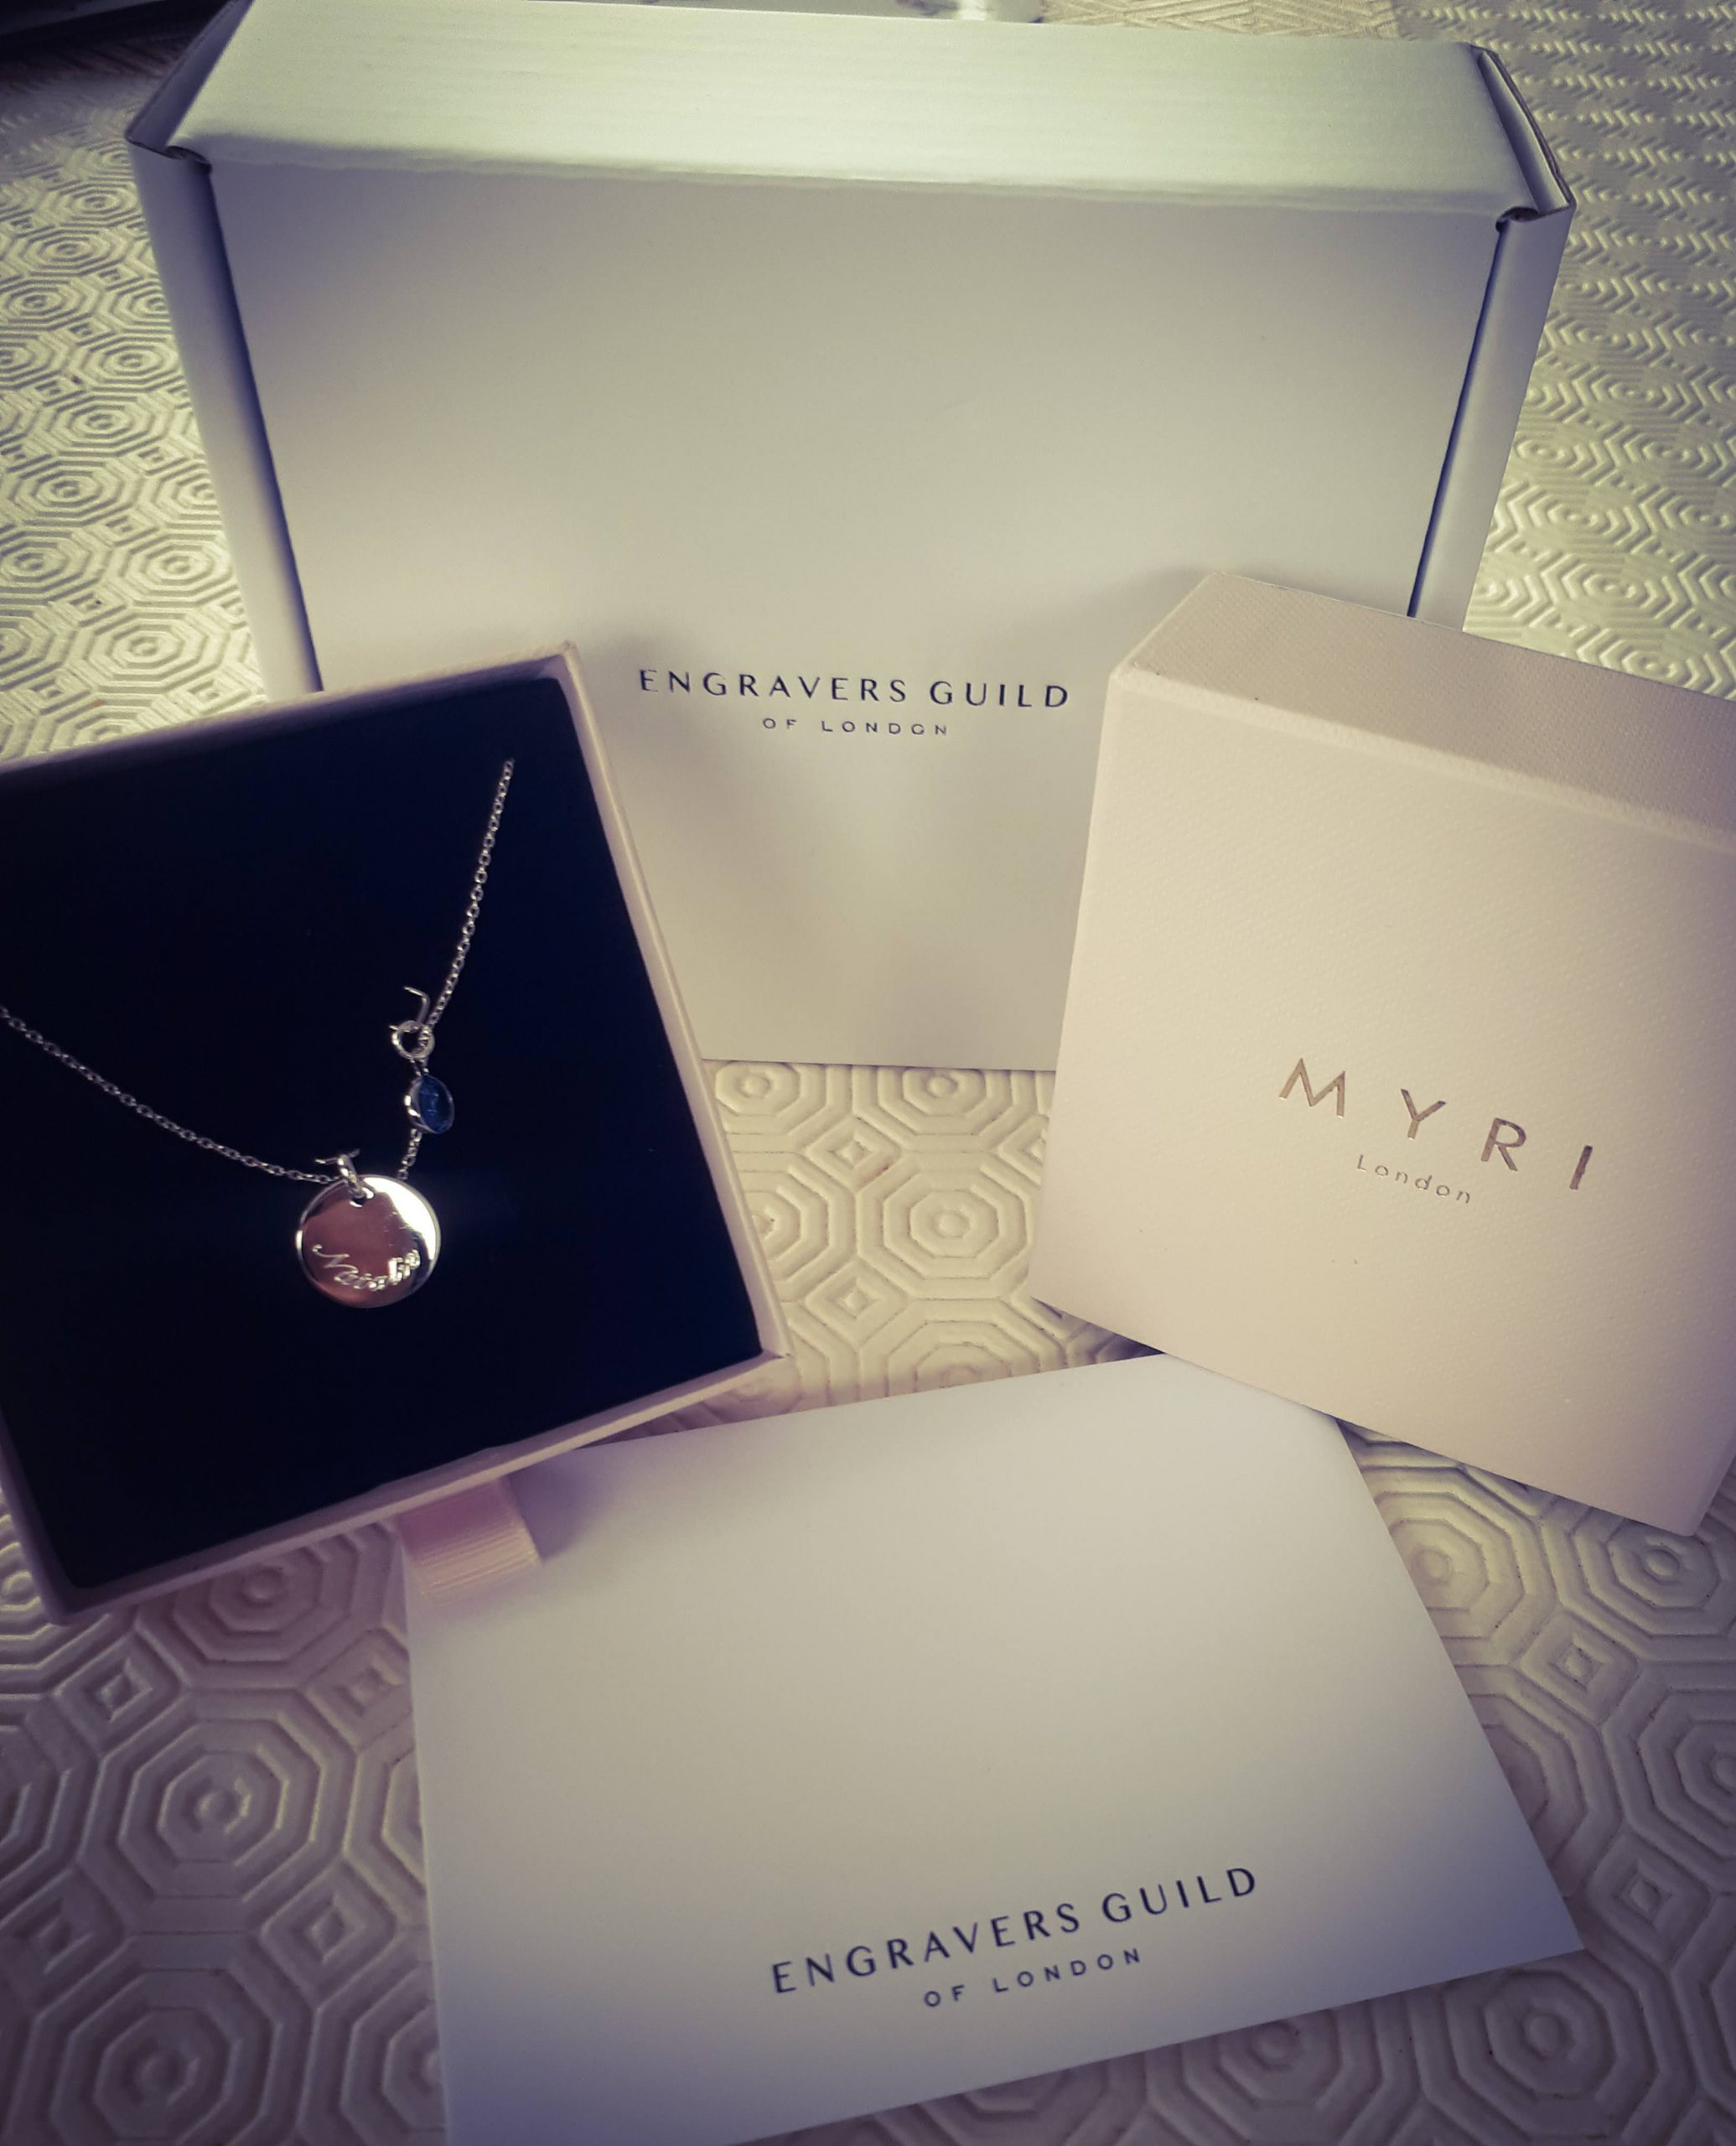 Necklace displayed in its box in front of the packaging